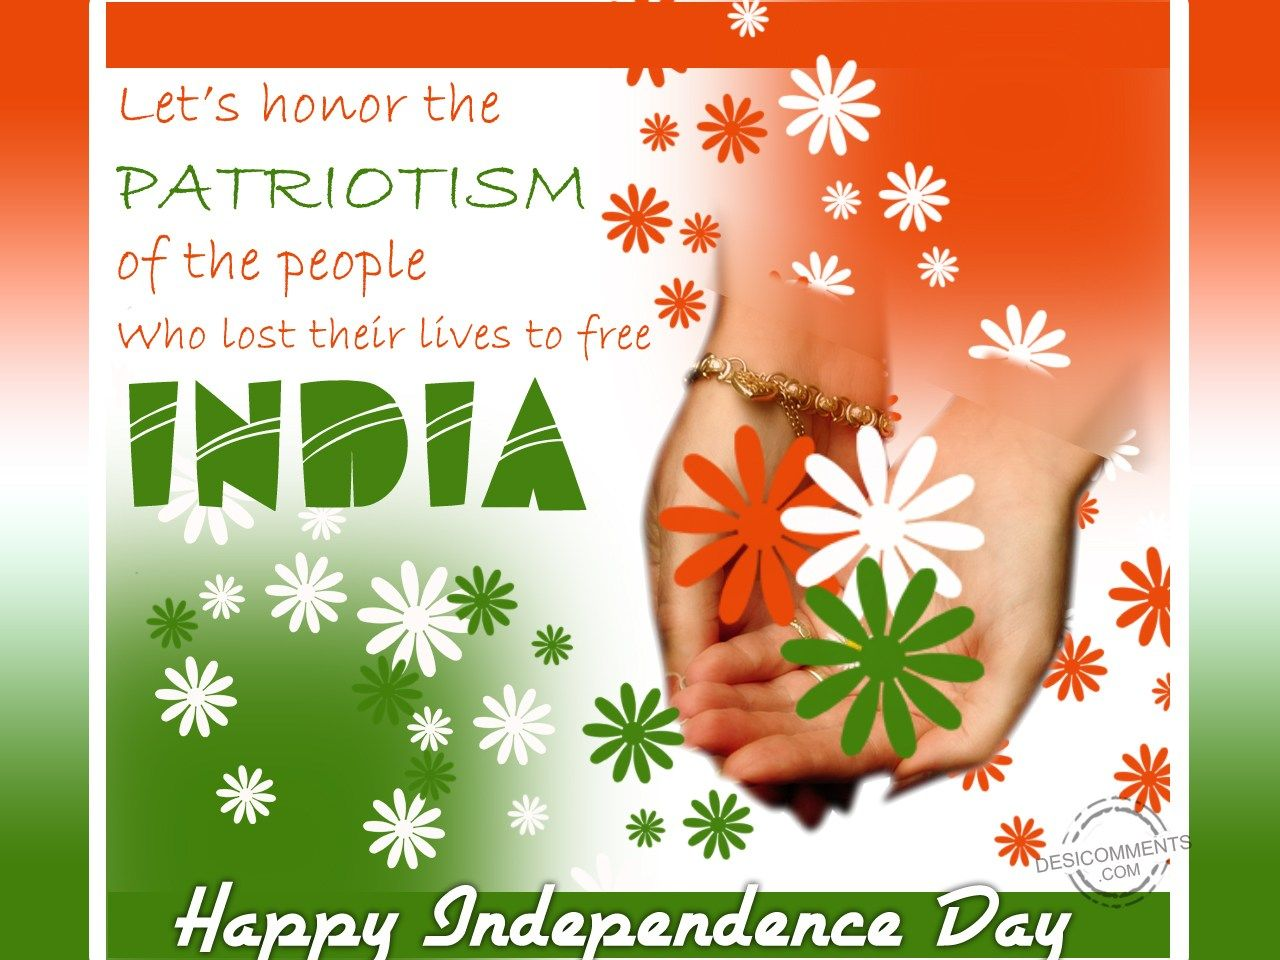 Indian independence day images also india crafts and activities for kids fight rh pinterest